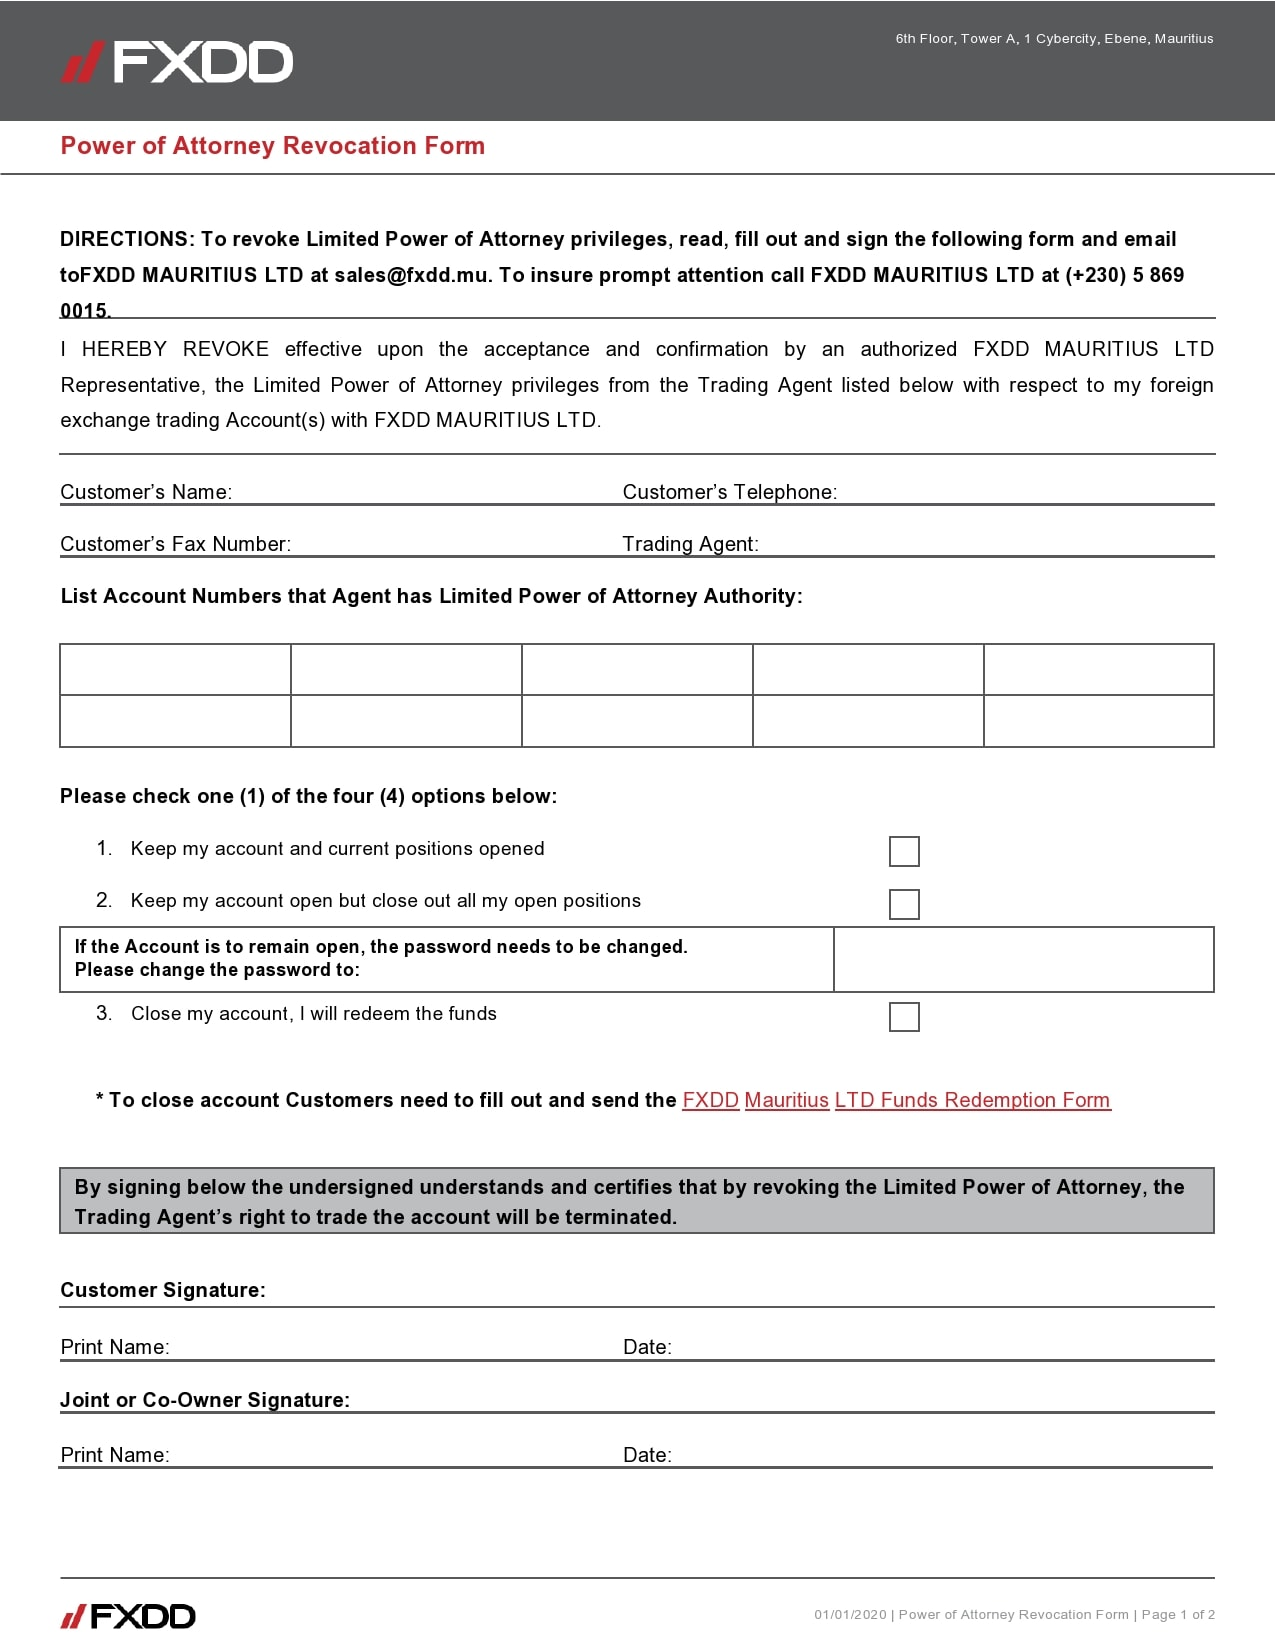 power of attorney revocation form 04